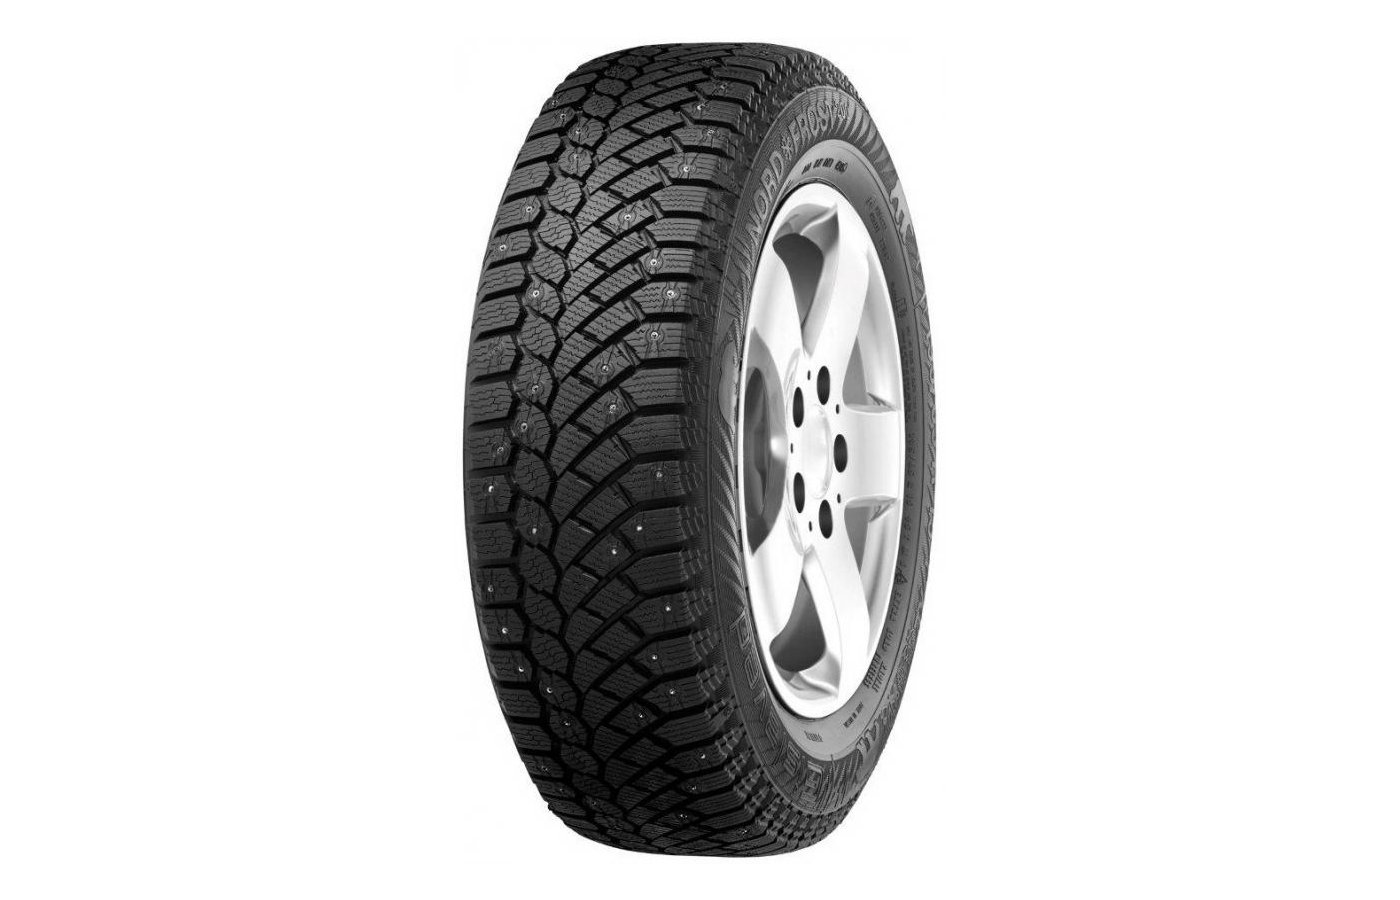 Шина Gislaved NordFrost 200 SUF FR 235/60 R18 TL 107T XL шип